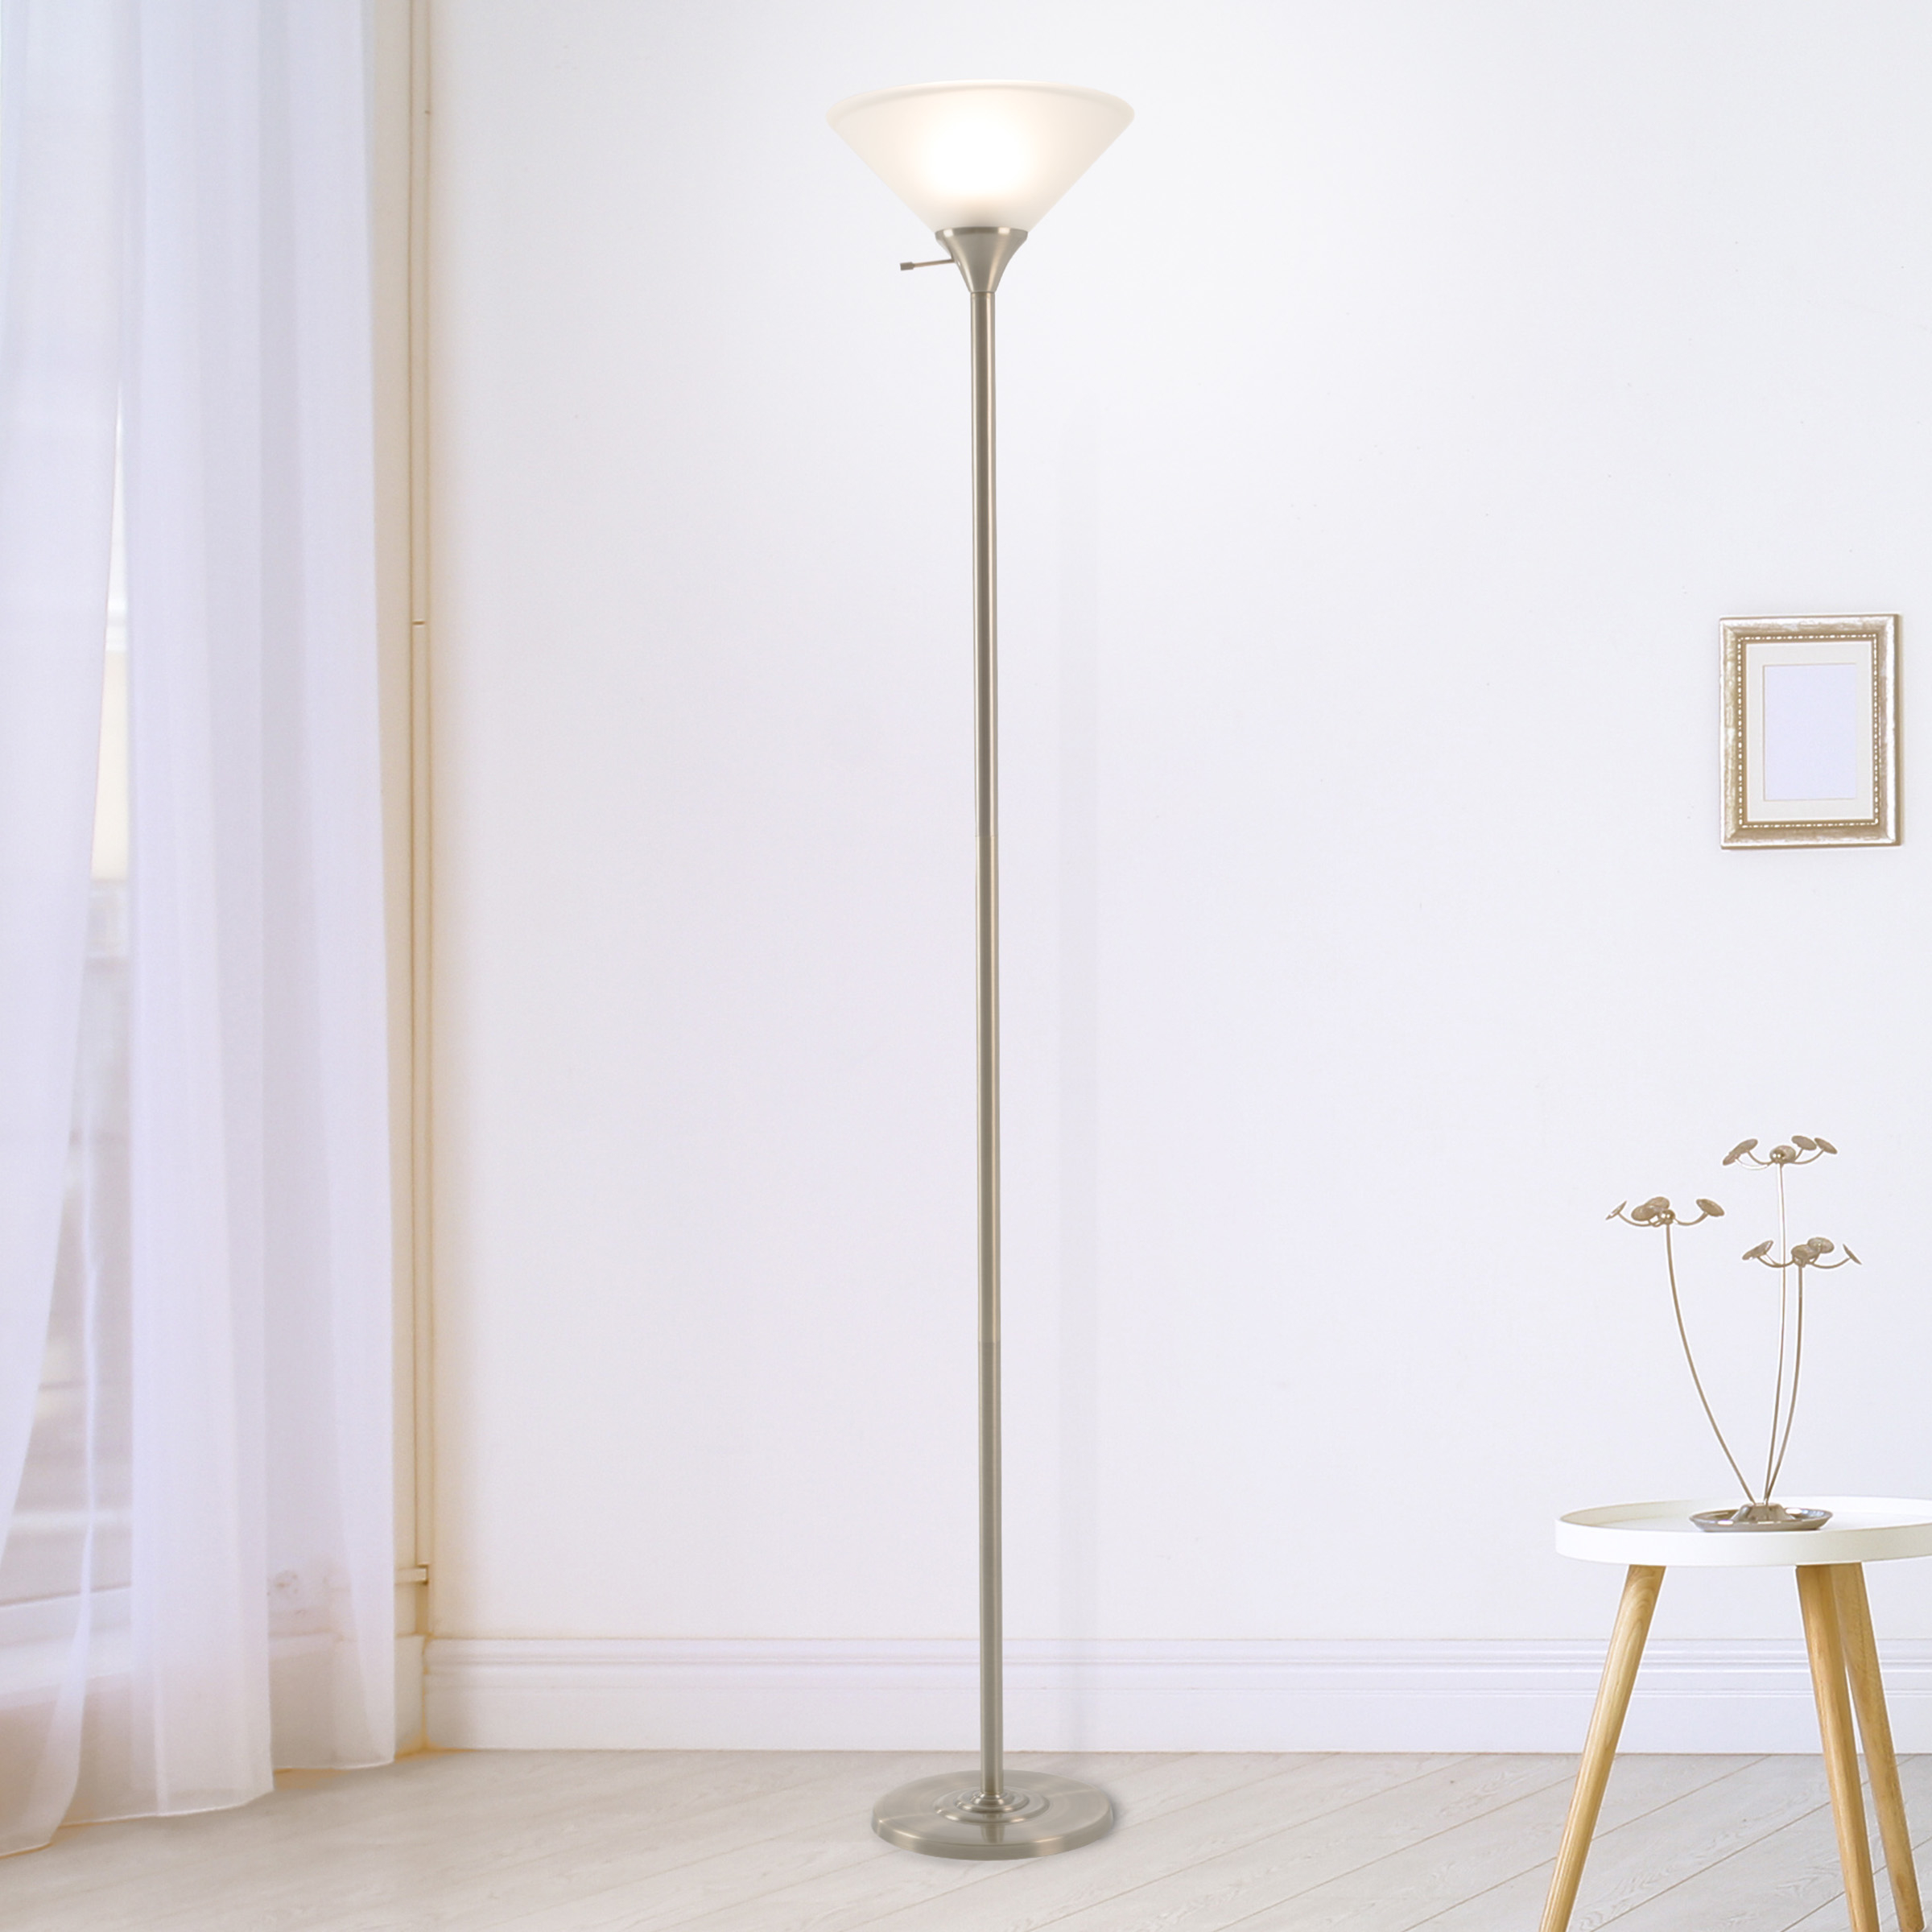 Torchiere Light Bronze Metal Floor Lamp 77 Inch LED Bulb Frosted Glass Shade